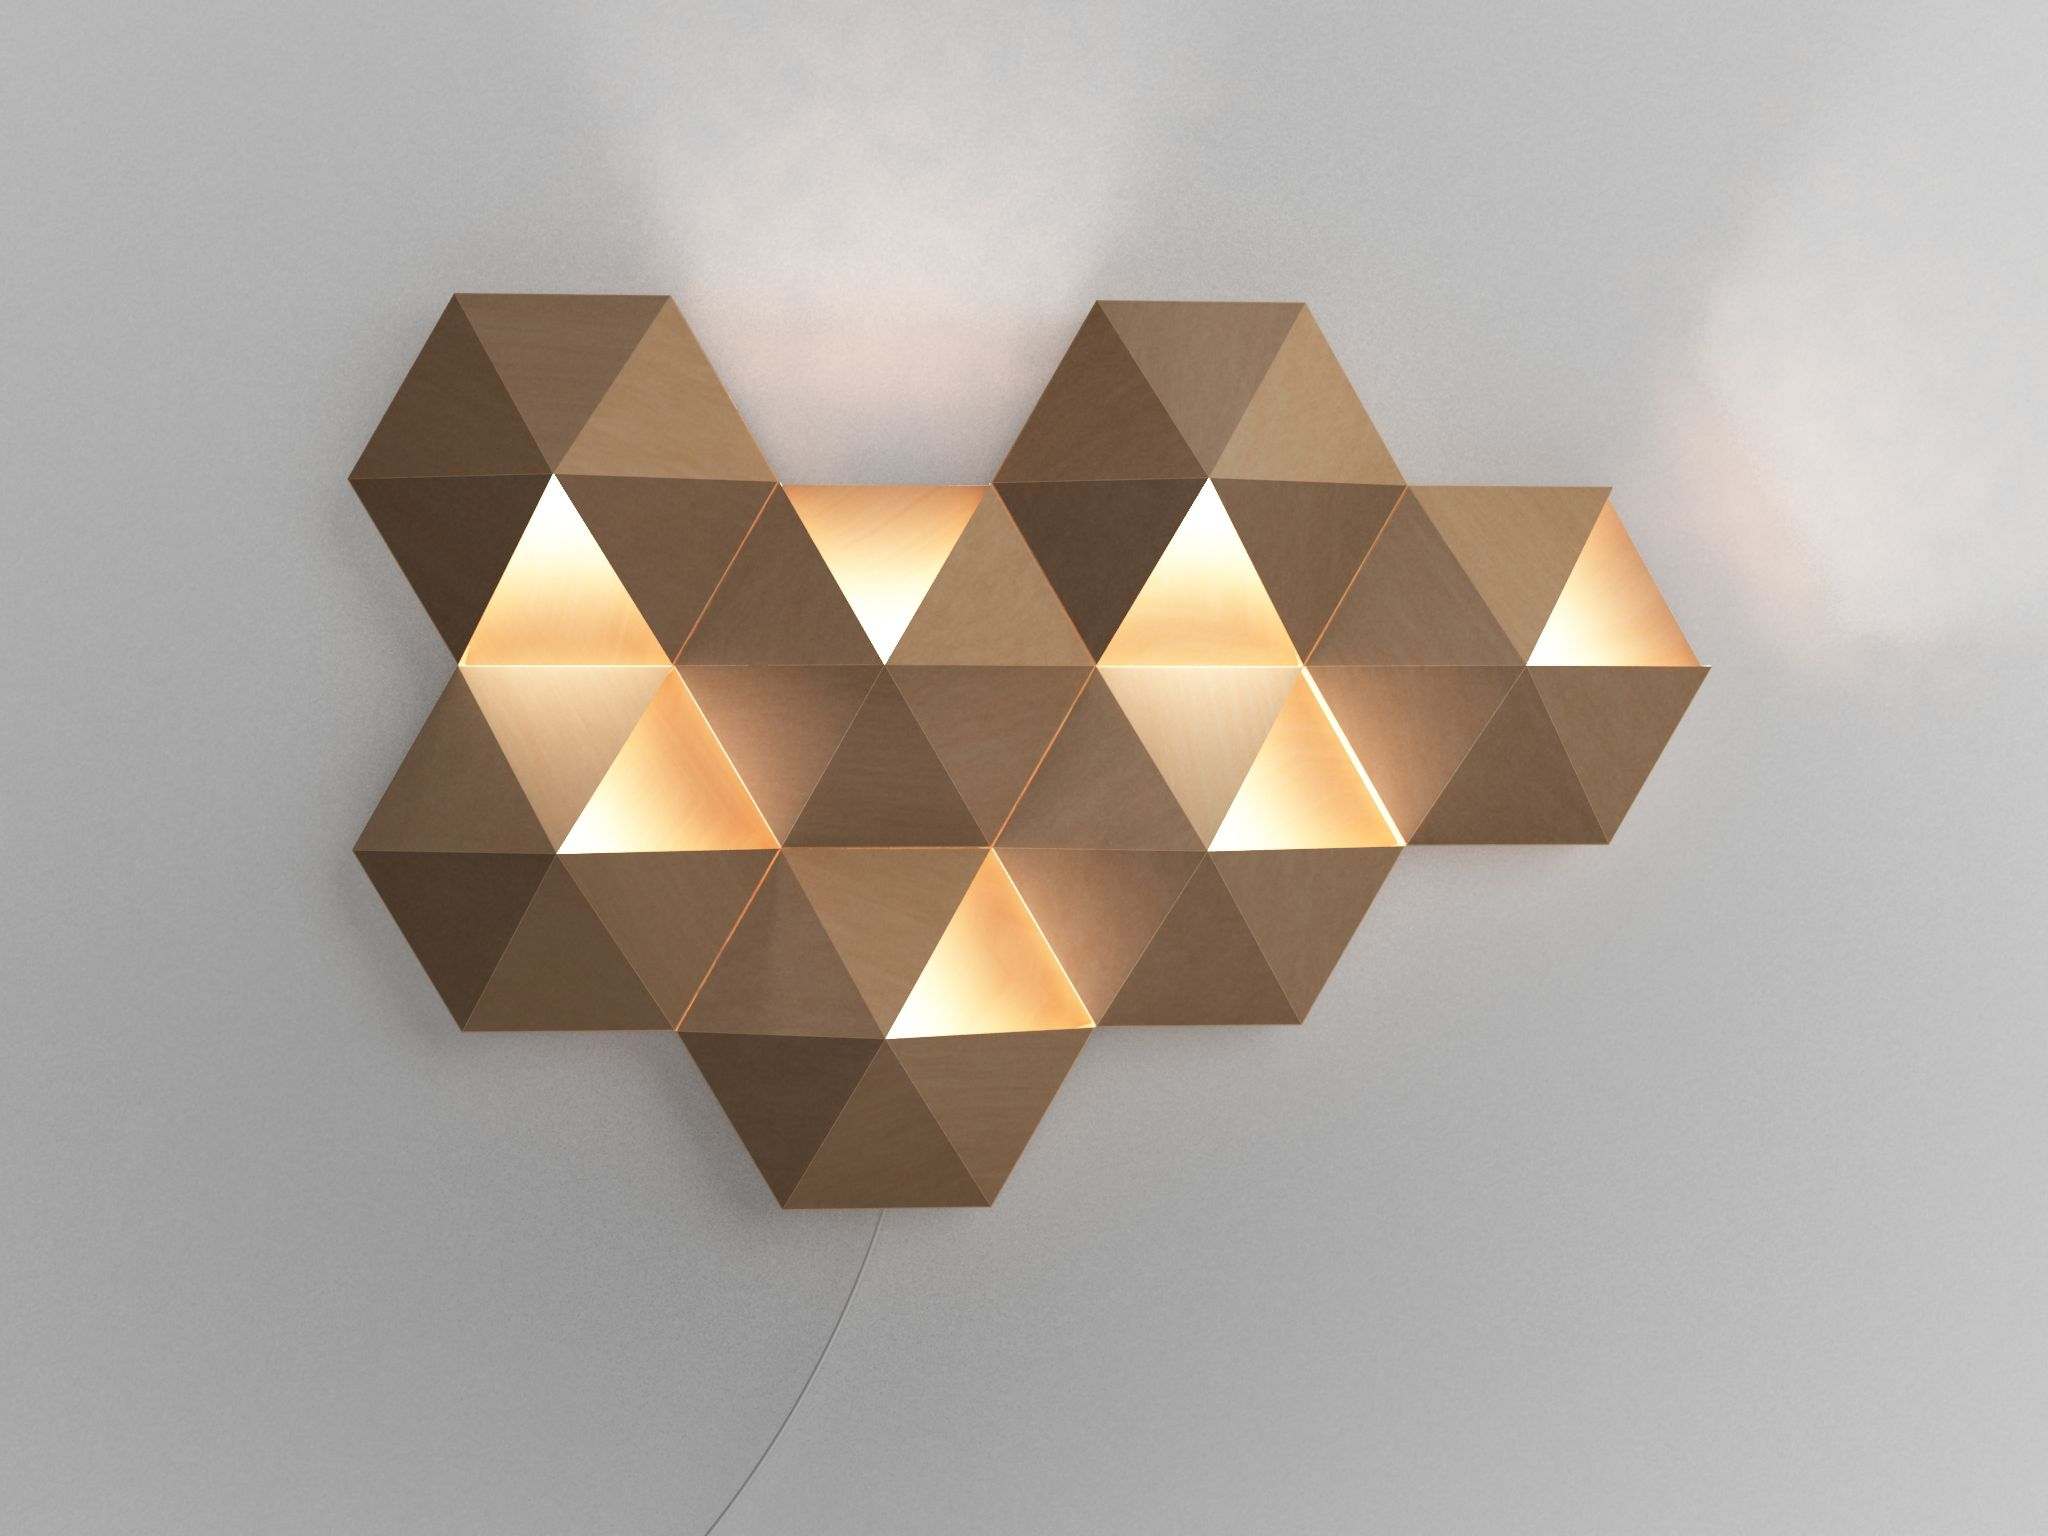 jervis chua ambihive ambient wall lamp industrial product jervis chua ambihive ambient wall lamp industrial product design